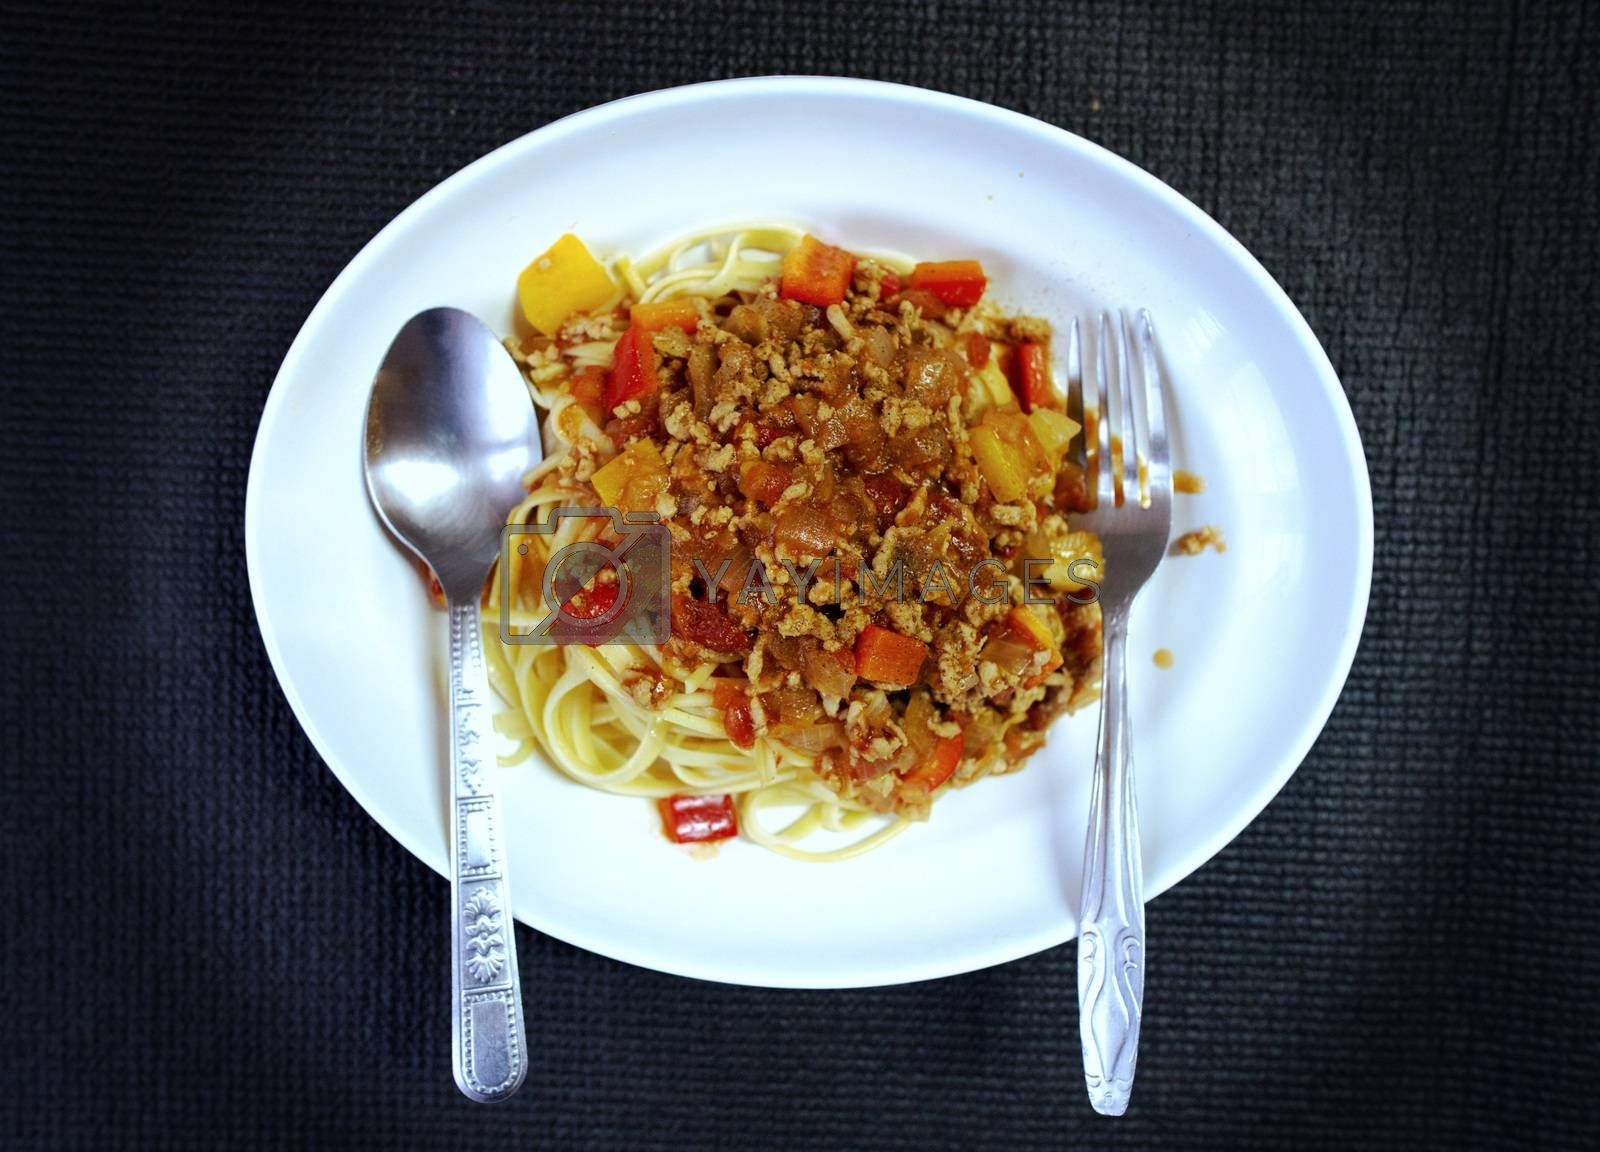 Vintage image of pork chop spaghetti, applied Thai style, top from white, isolated on black background.